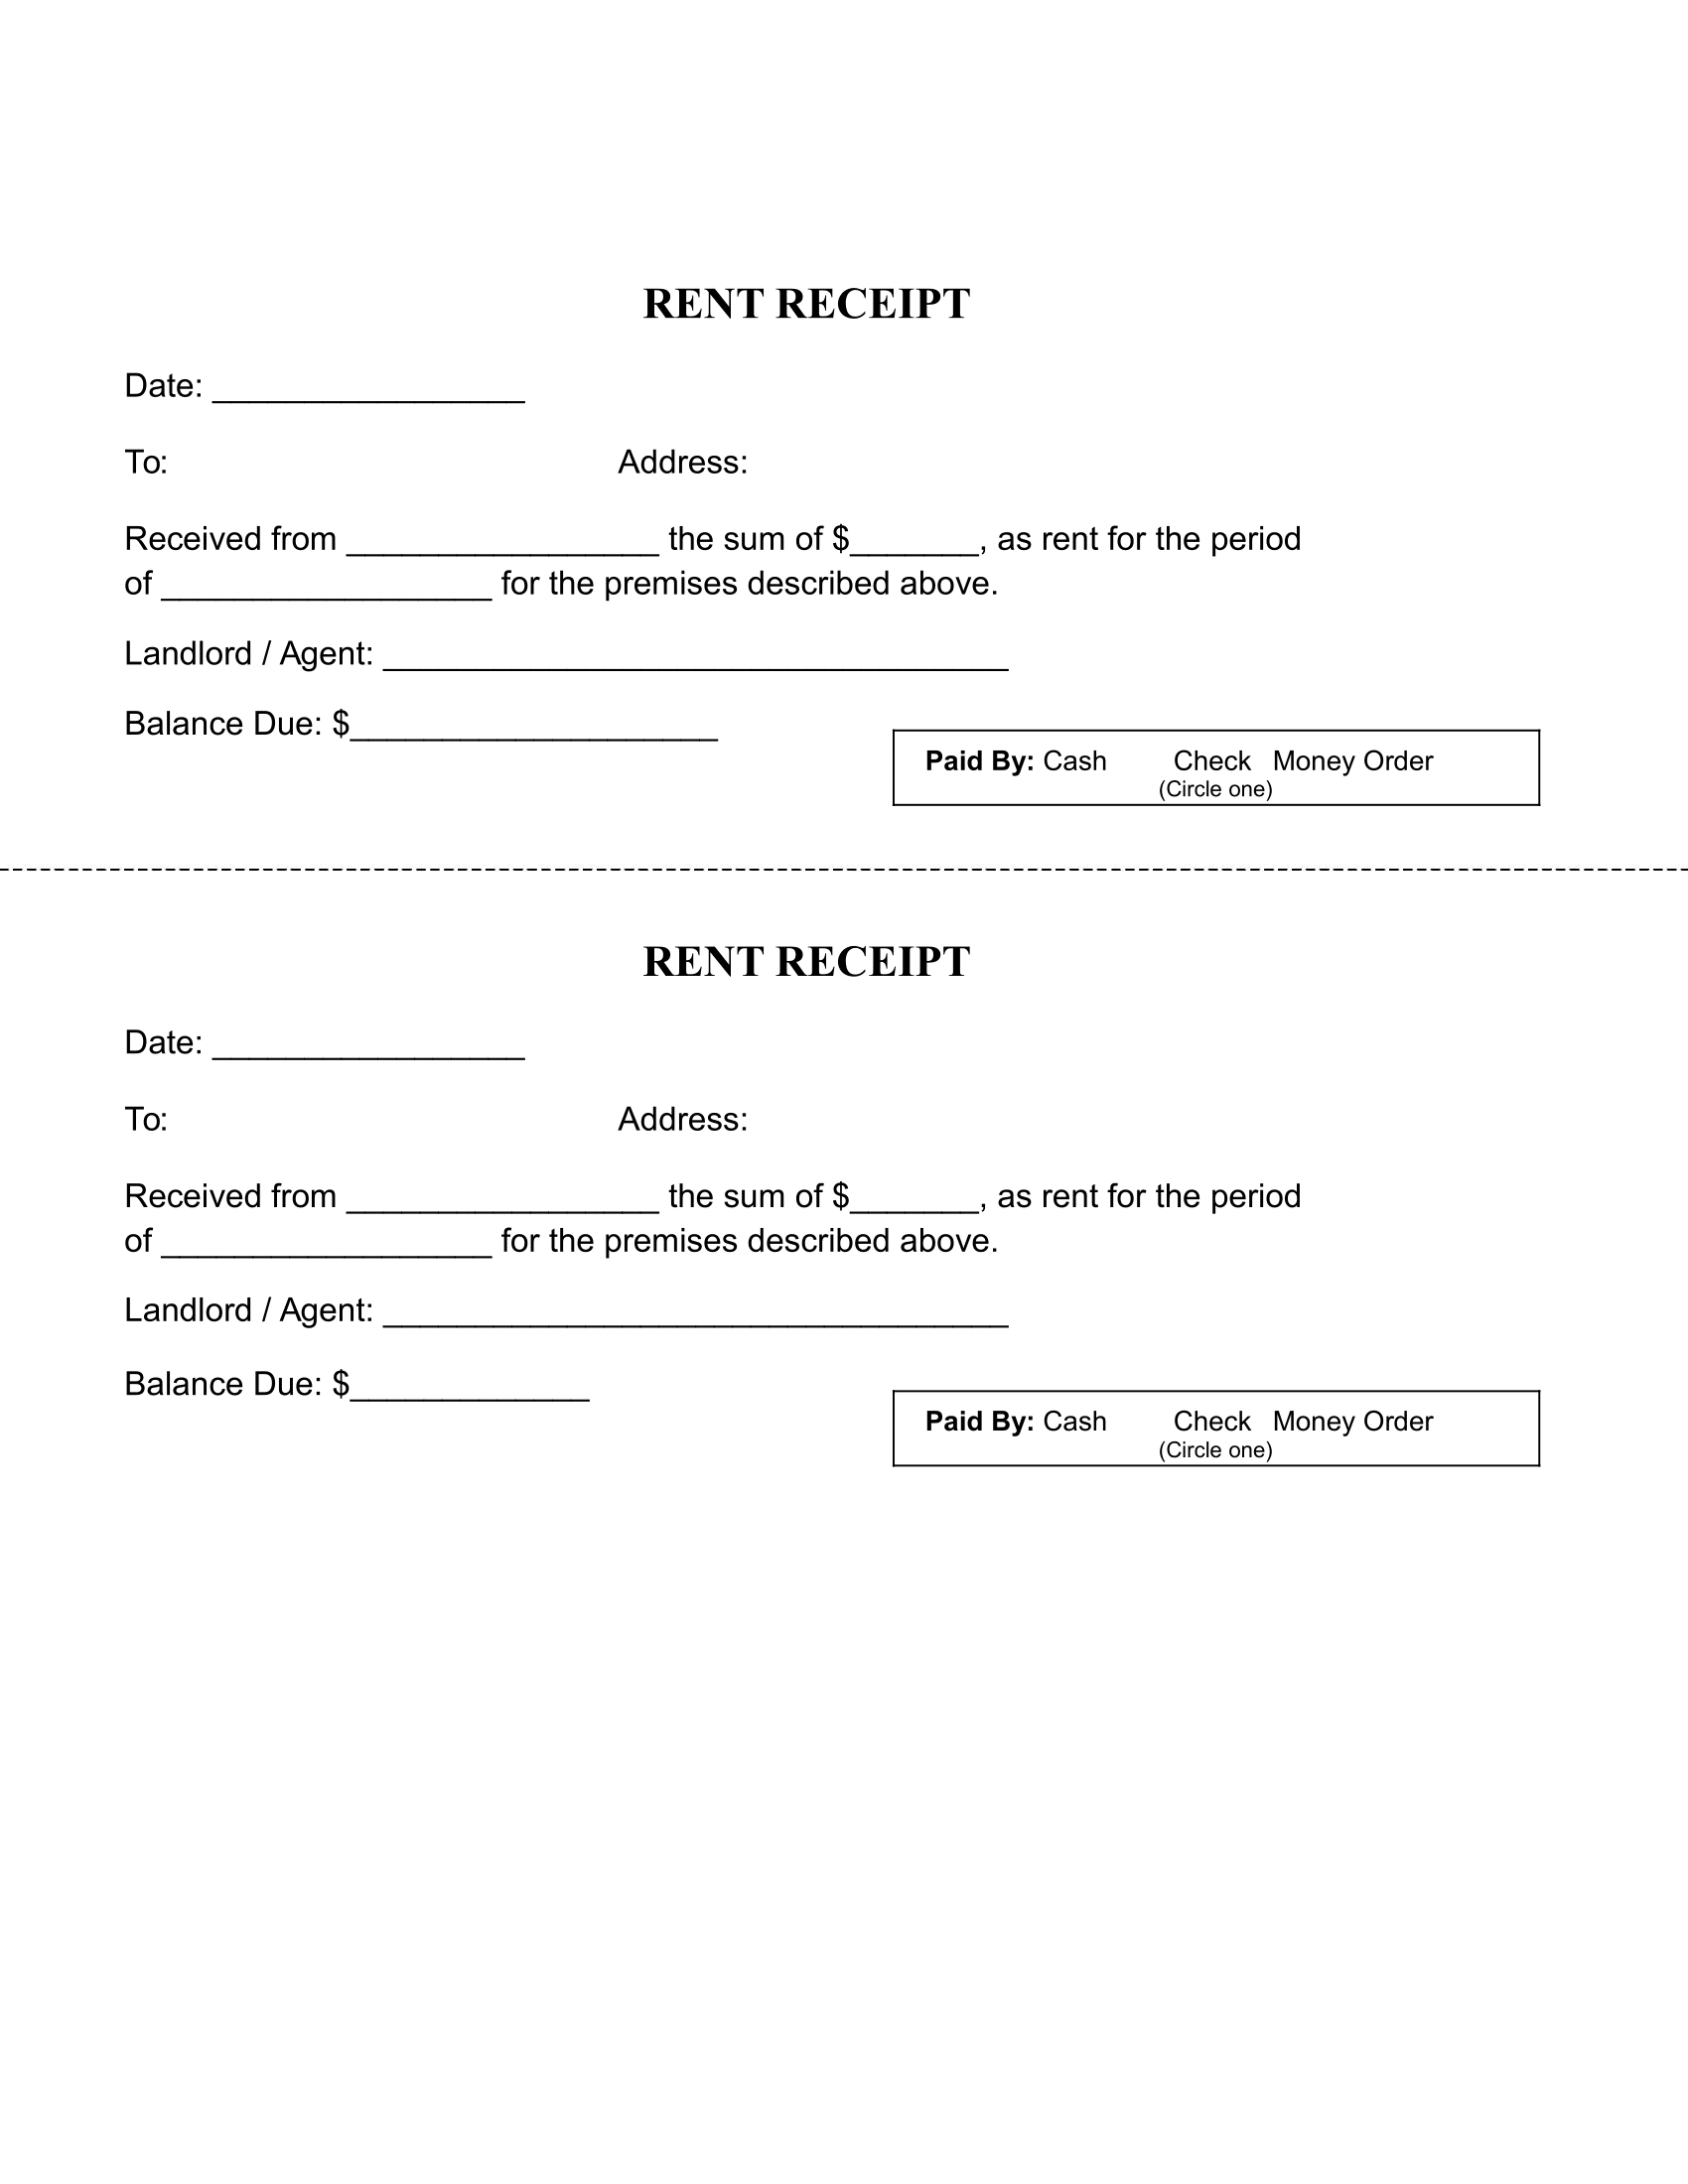 Printable Rent Receipt Template - Free Download - Free Printable Rent Receipt